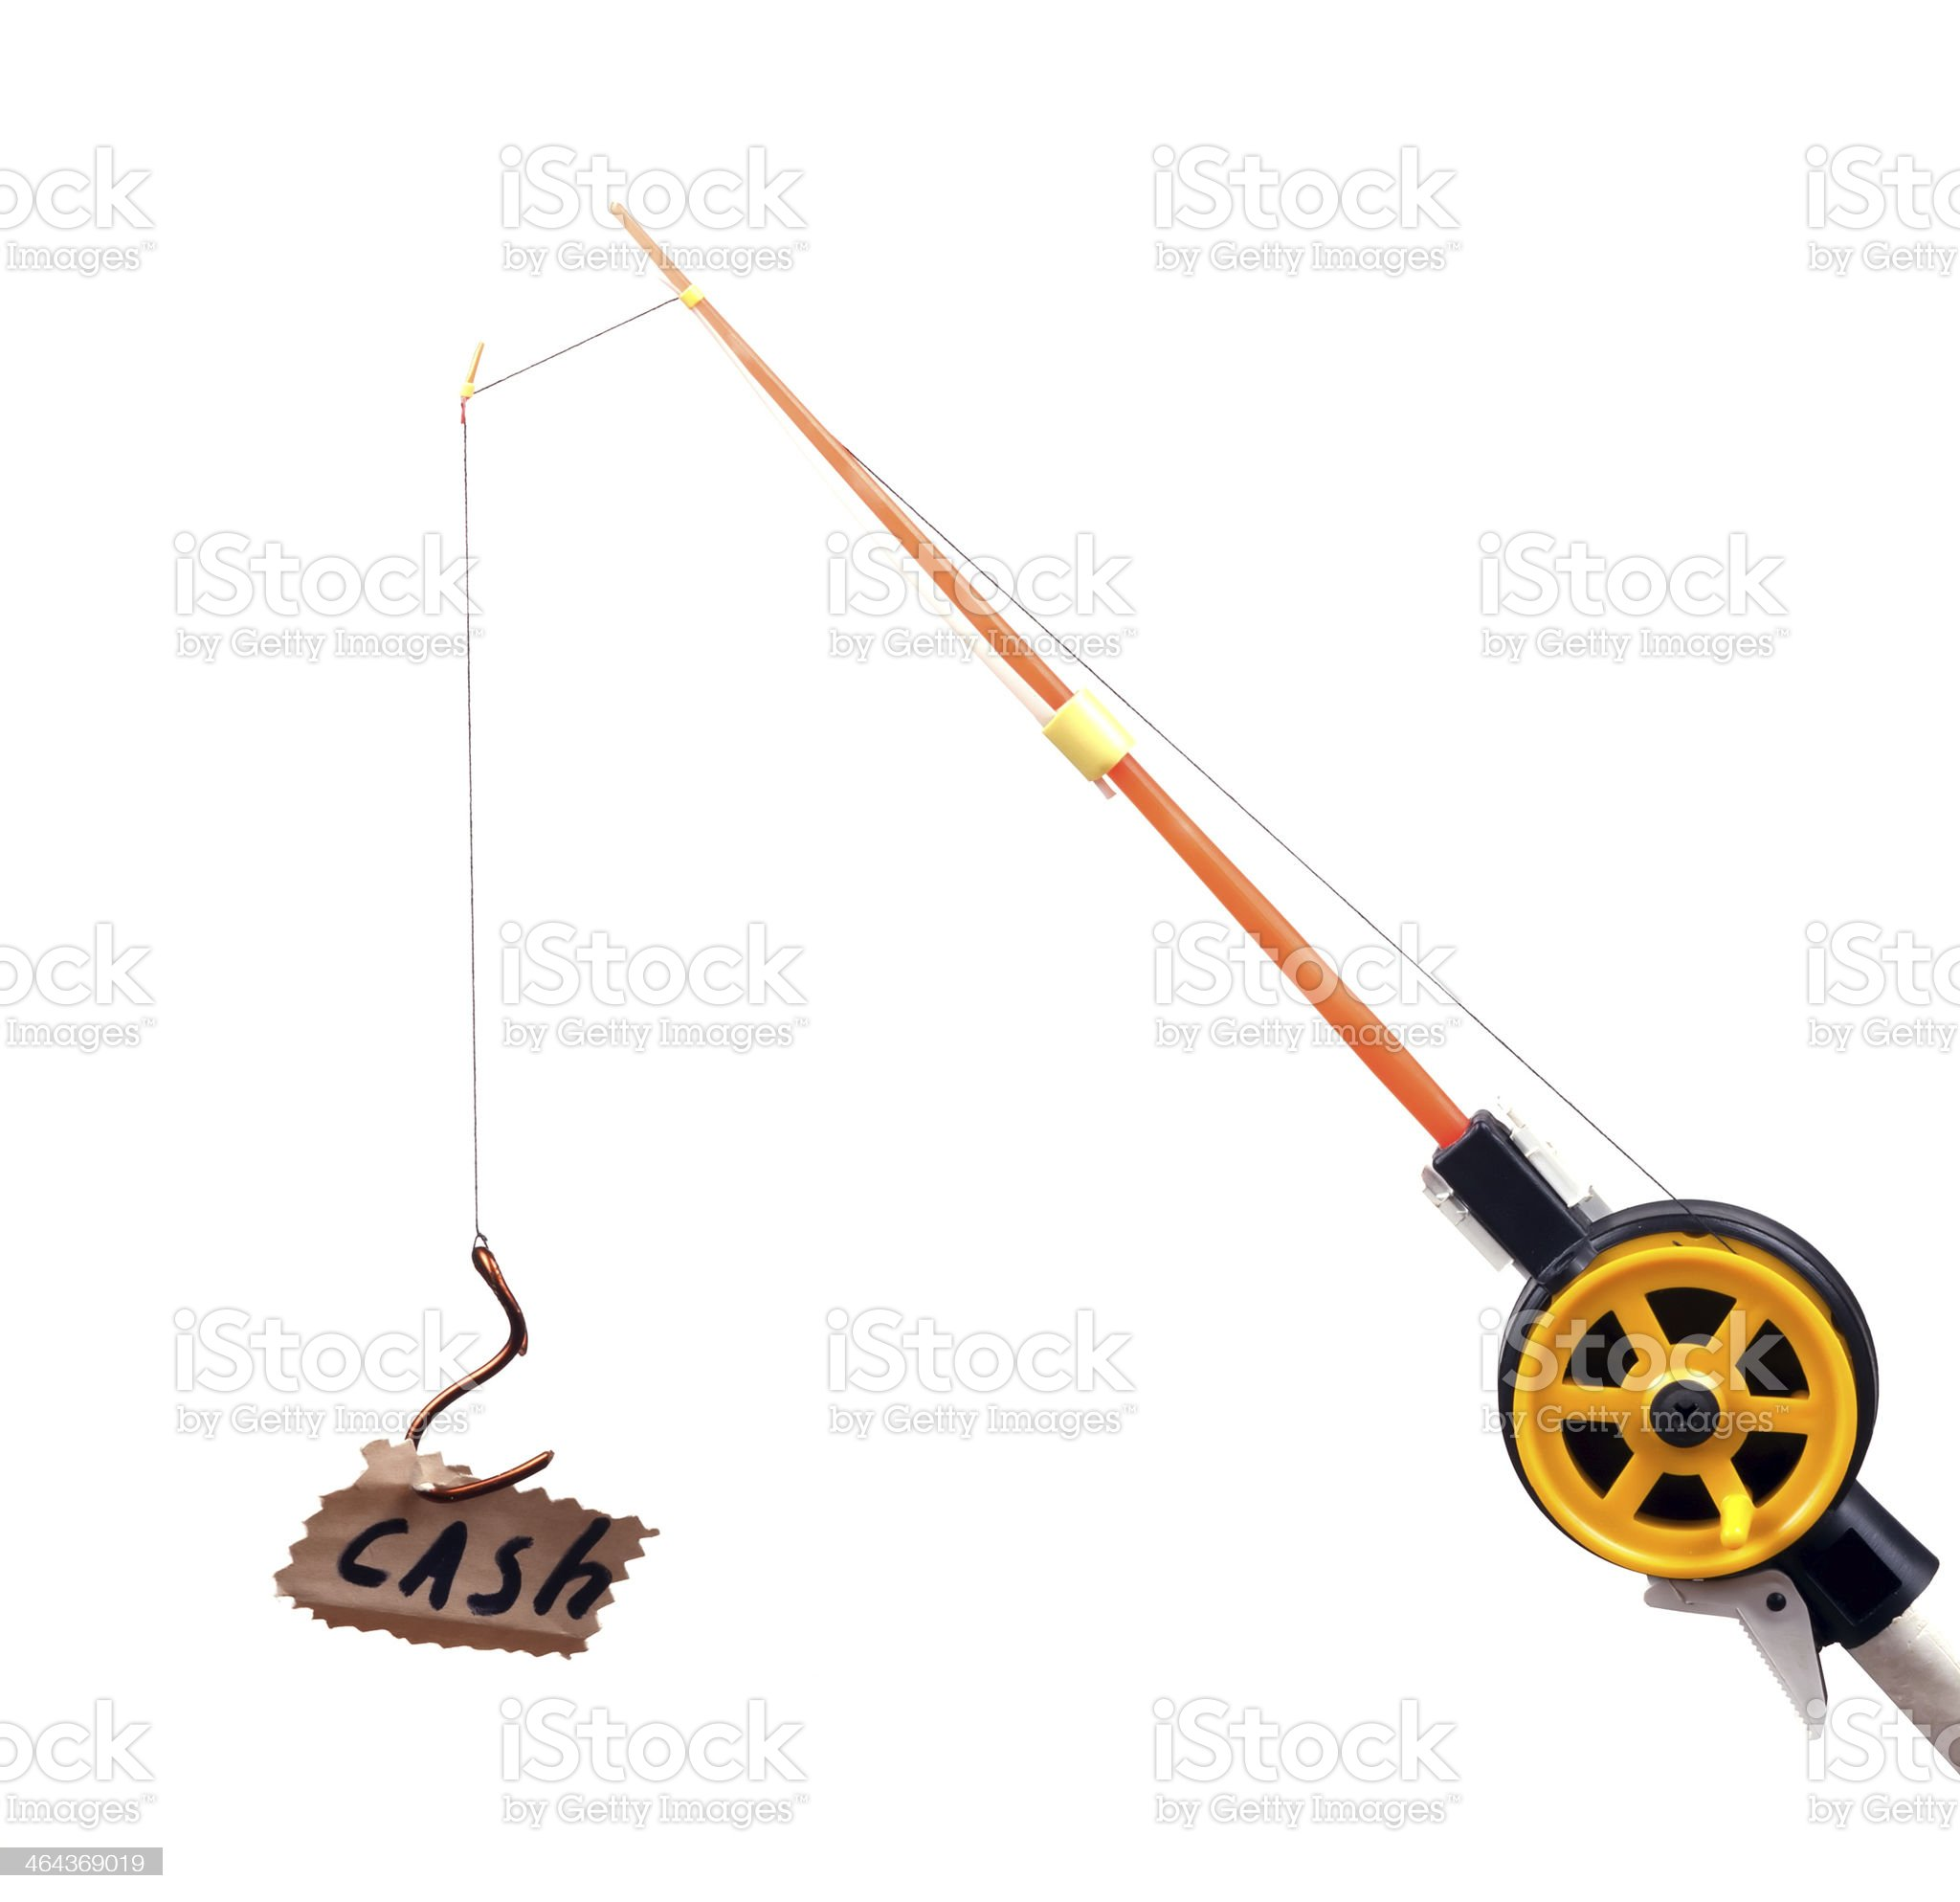 fishing rod royalty-free stock photo